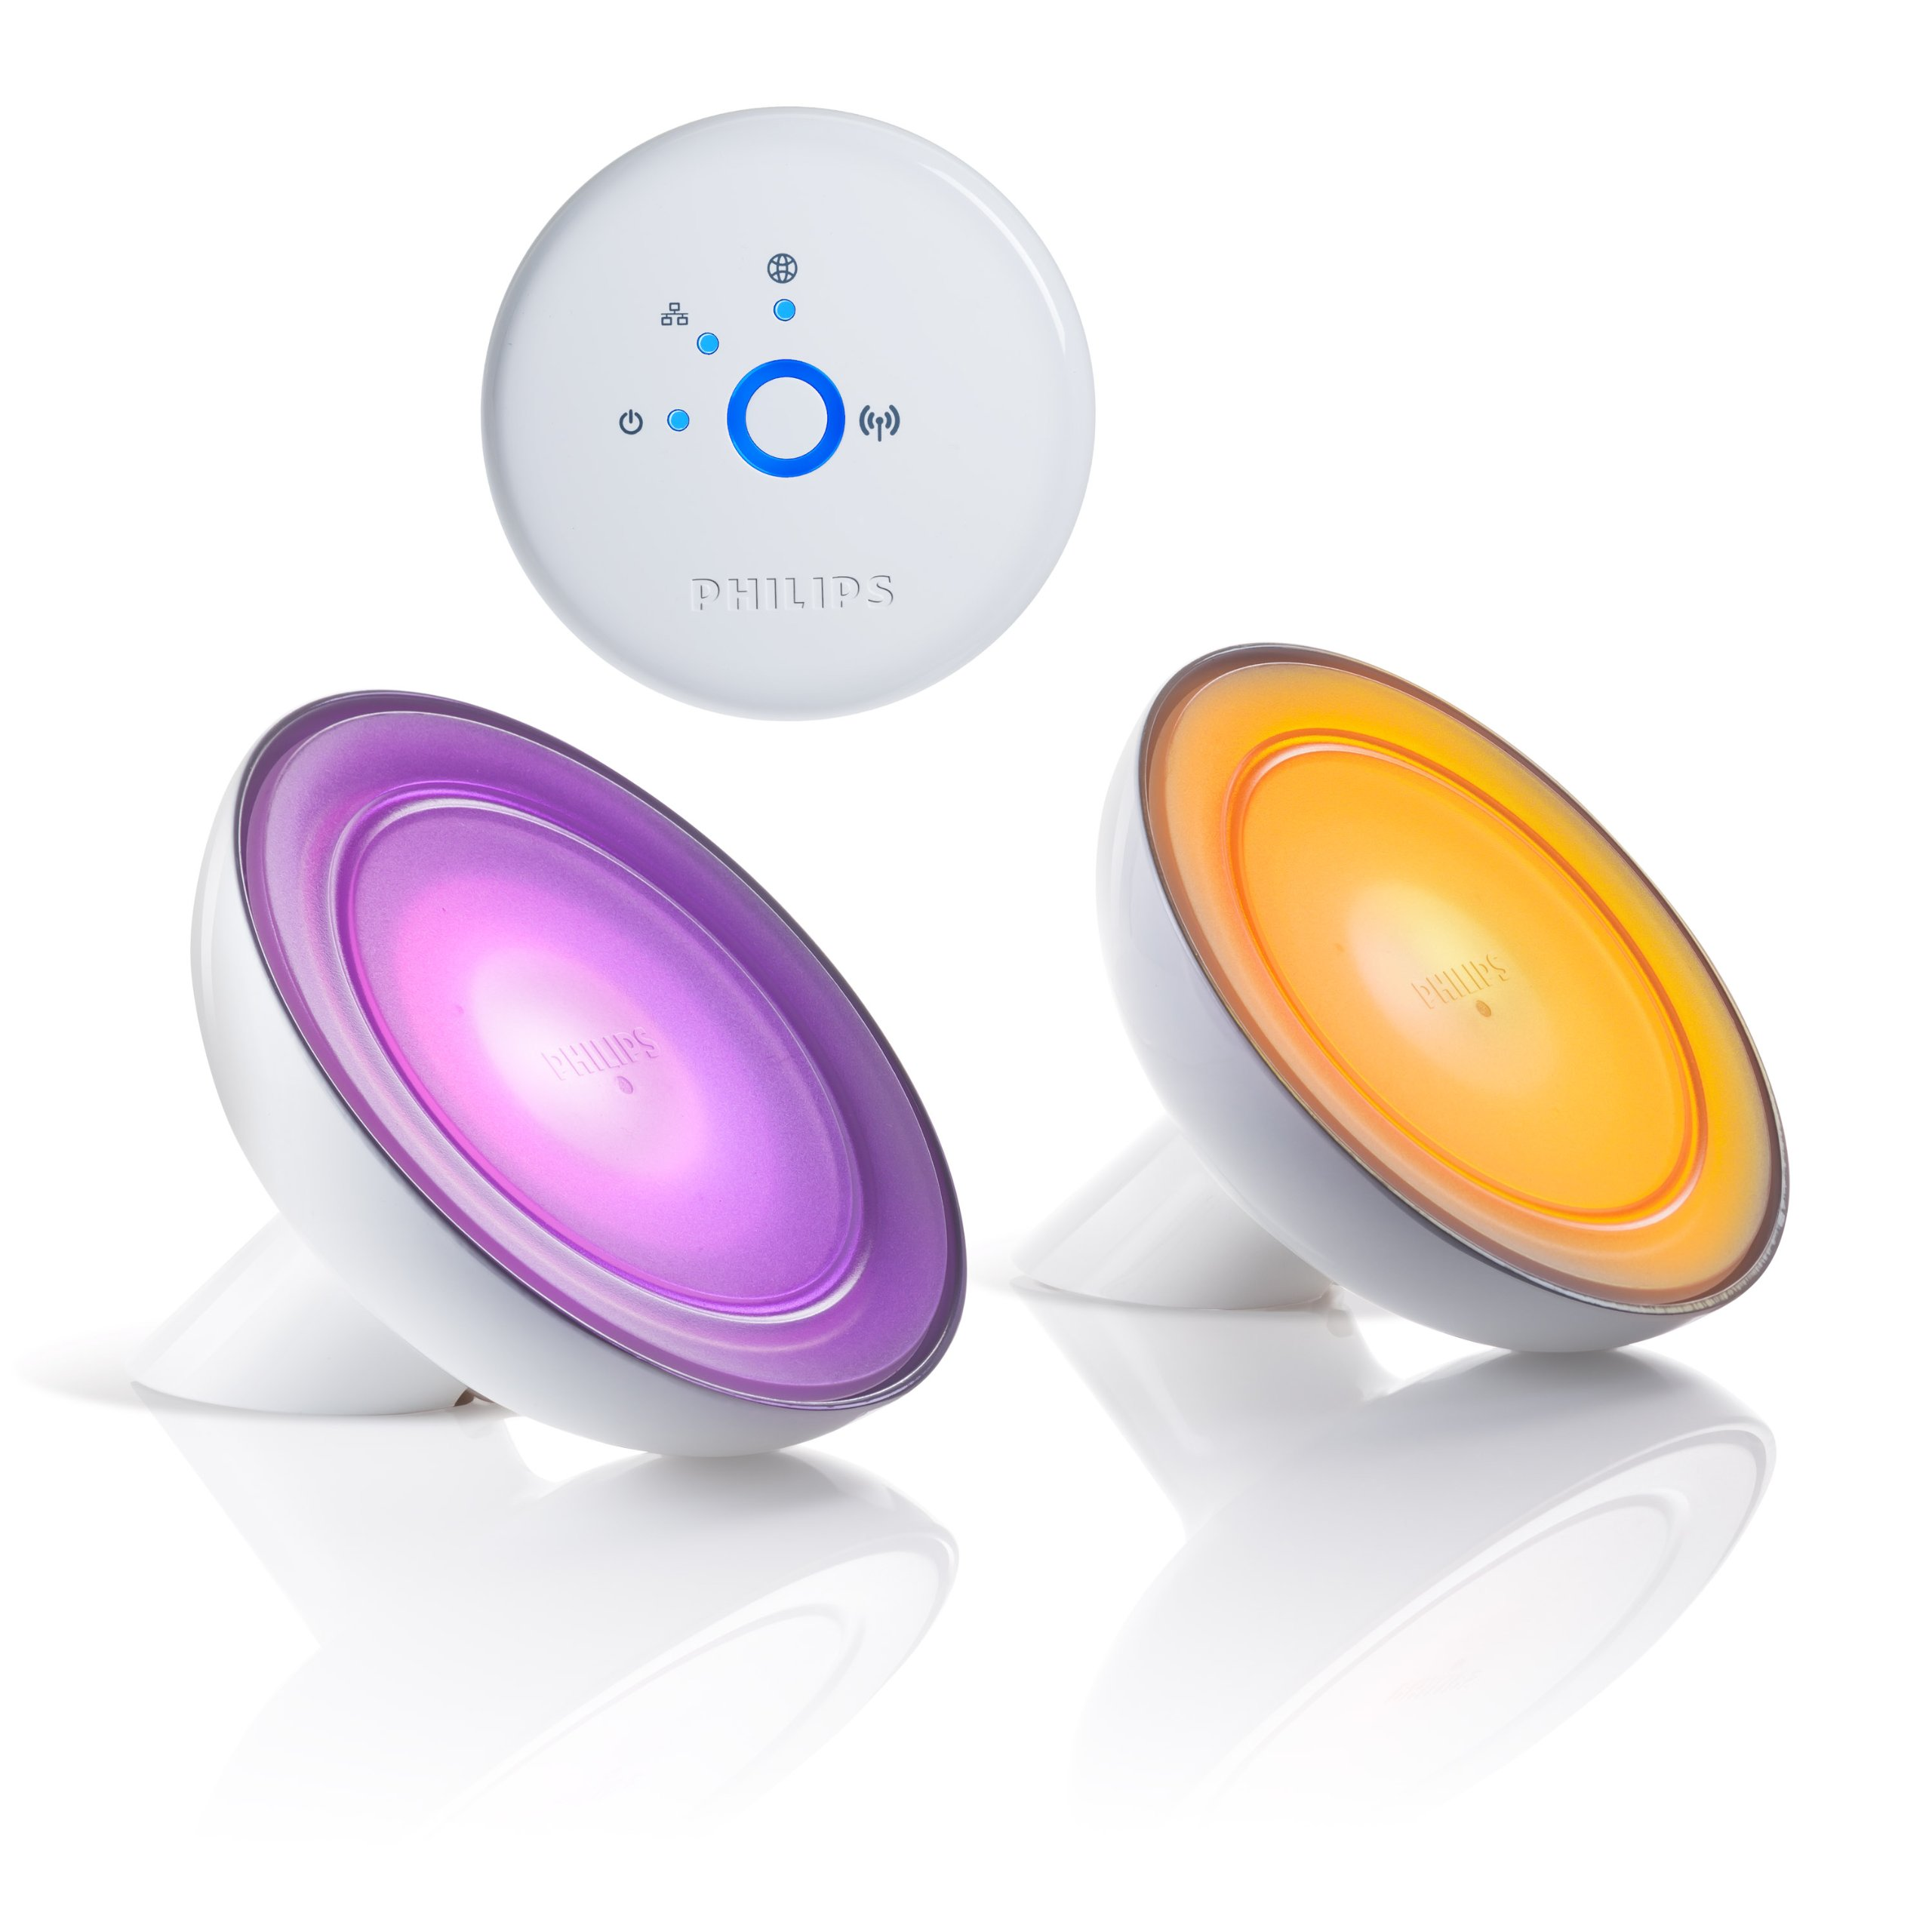 Philips Hue Bloom 2-Pack Dimmable LED Smart Table Lamp Starter Kit (Older Model, 2 Blooms and 1 Bridge, Compatible with Amazon Alexa, Apple HomeKit and Google Assistant)